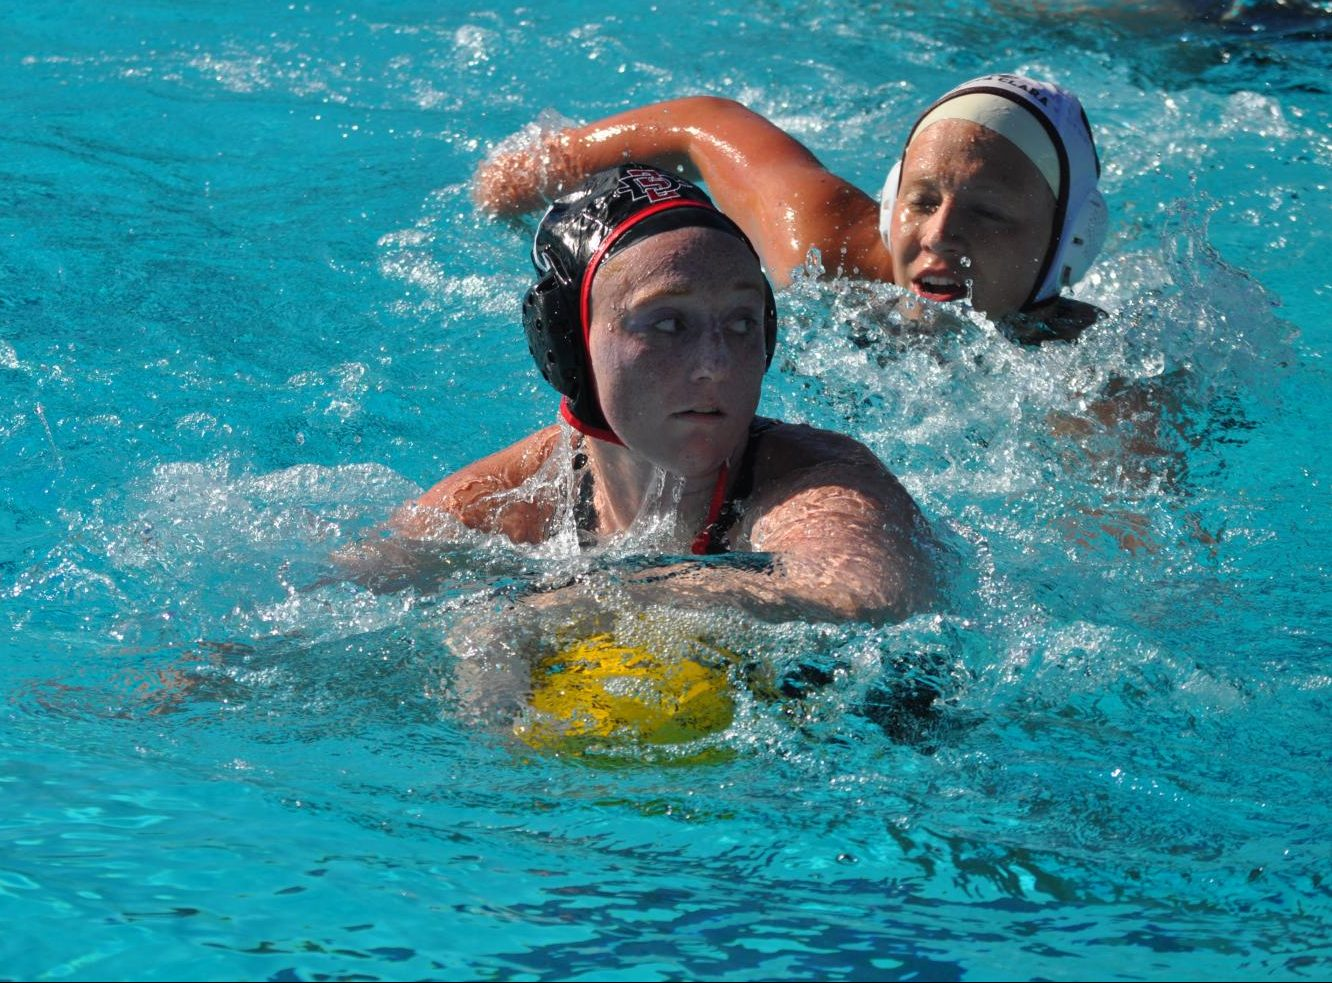 Sophomore utility player Emily Bennett keeps the ball away from a Santa Clara defender during the Aztecs' 4-1 victory over the Broncos on March 28 at the Aztec Aquaplex.